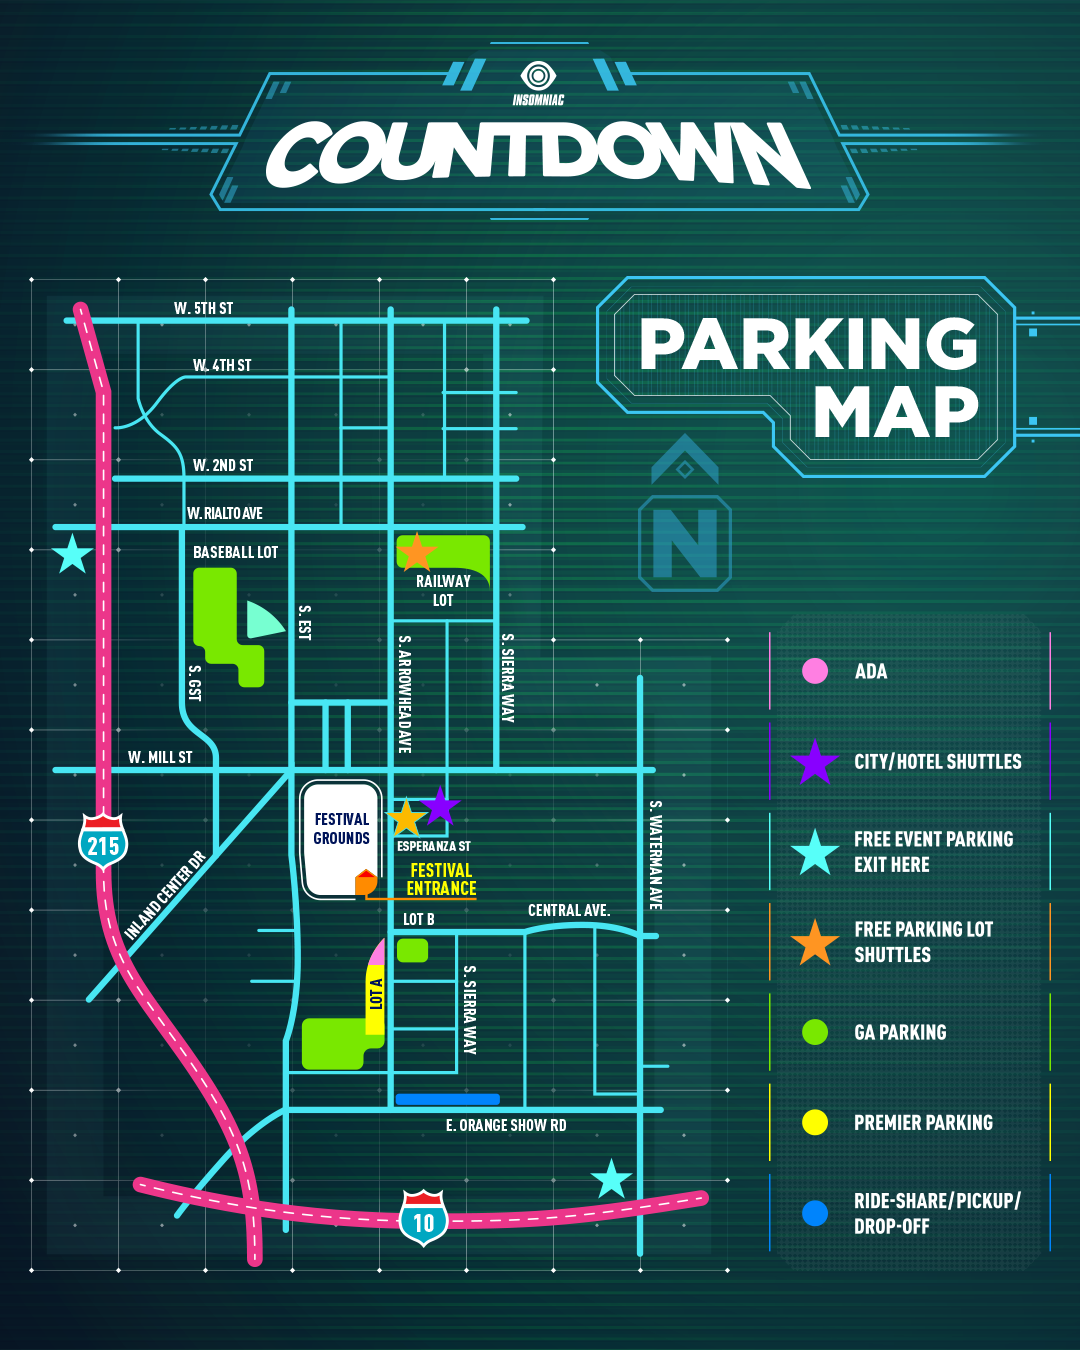 Countdown NYE 2018 Festival Parking Map